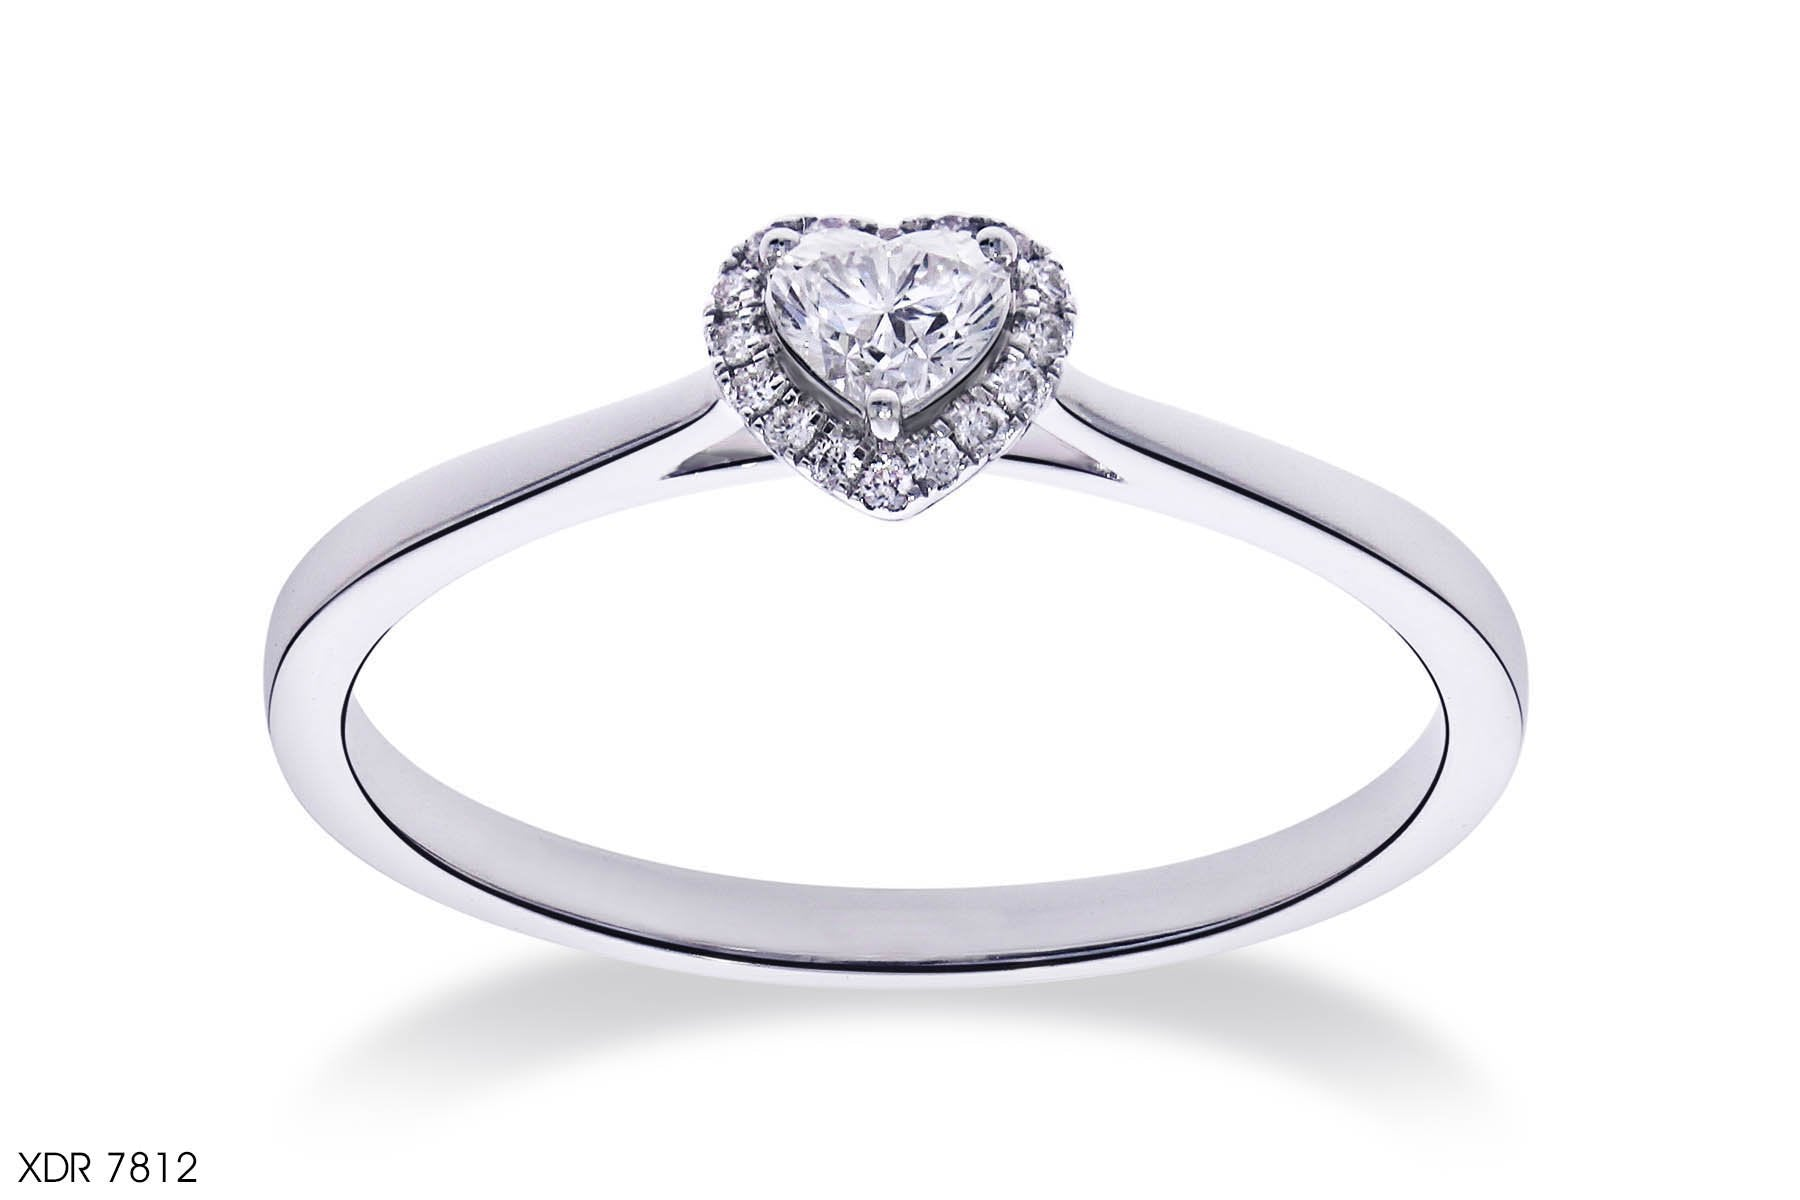 Dainty Heart-Shaped Diamond Engagement Ring